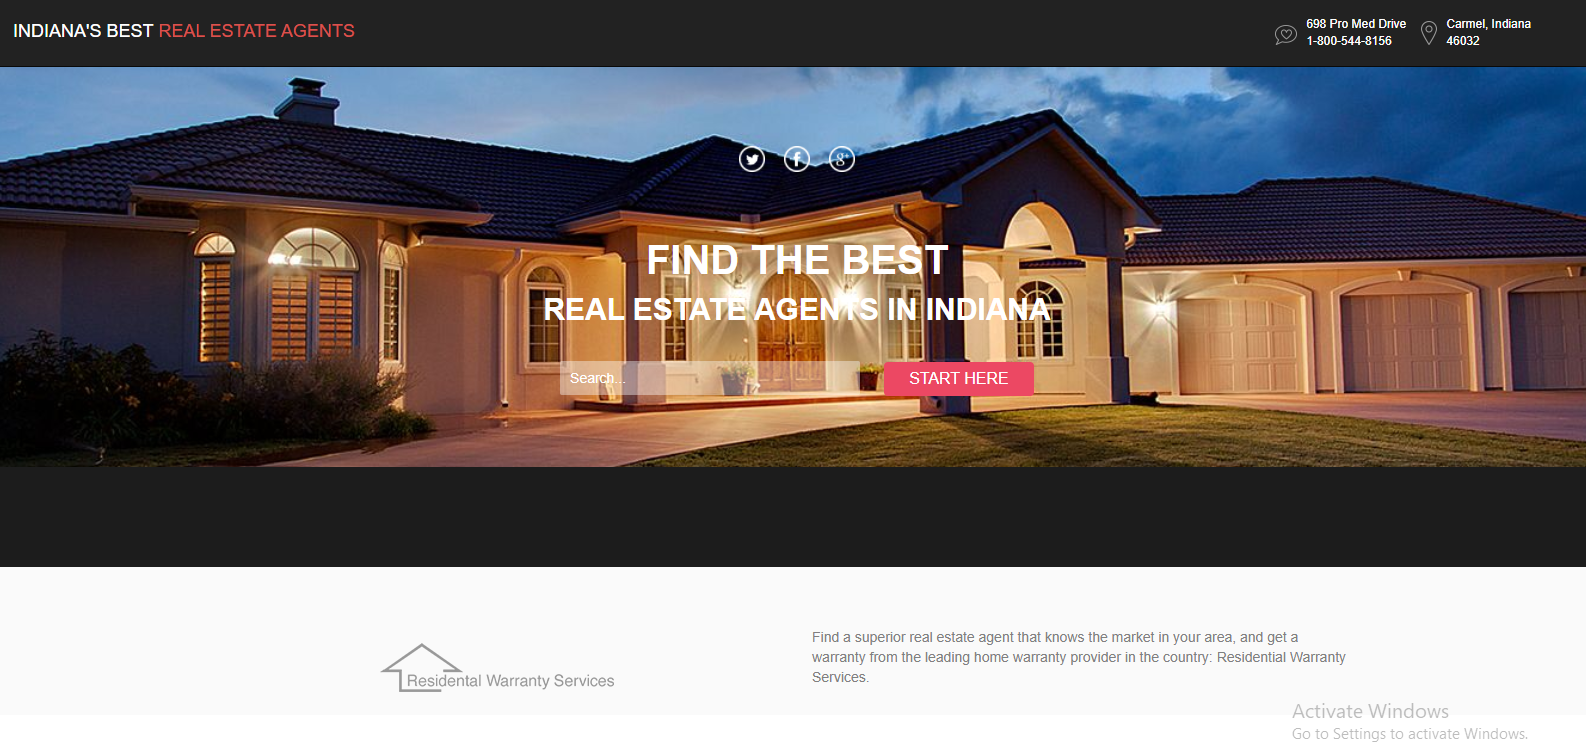 Indianas best real estate agents